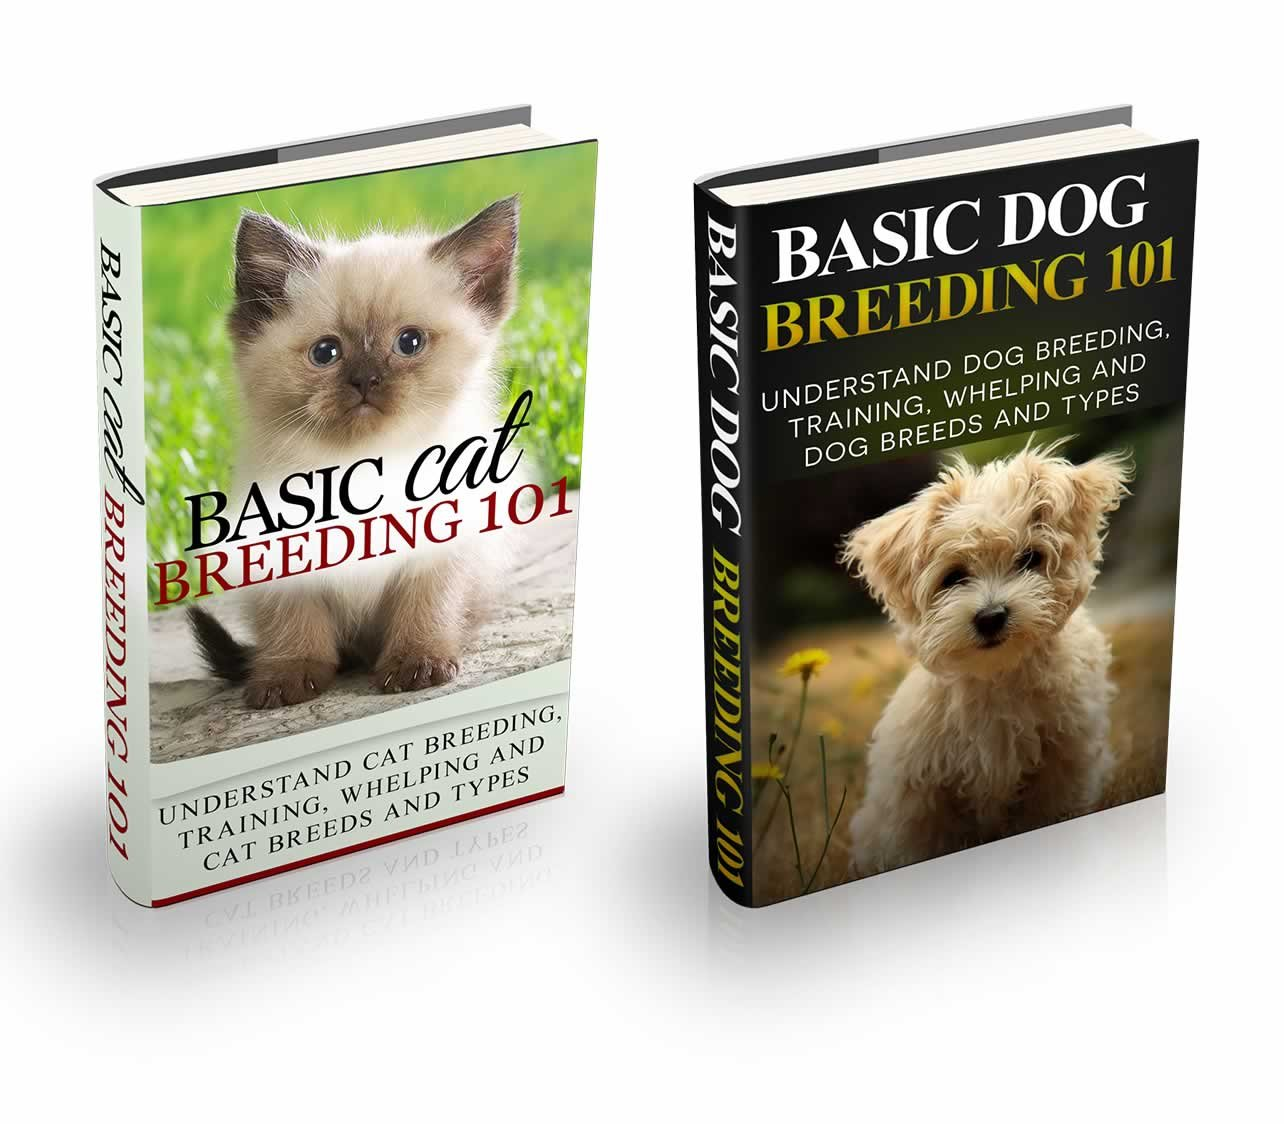 Animal Breeding: Bundle Box - Cat Breeding & Dog Breeding (Domestic Animals  Breeding - Breading Animals - Homesteading Animals Book 1) eBook: Taylor,  Clara: Amazon.co.uk: Kindle Store